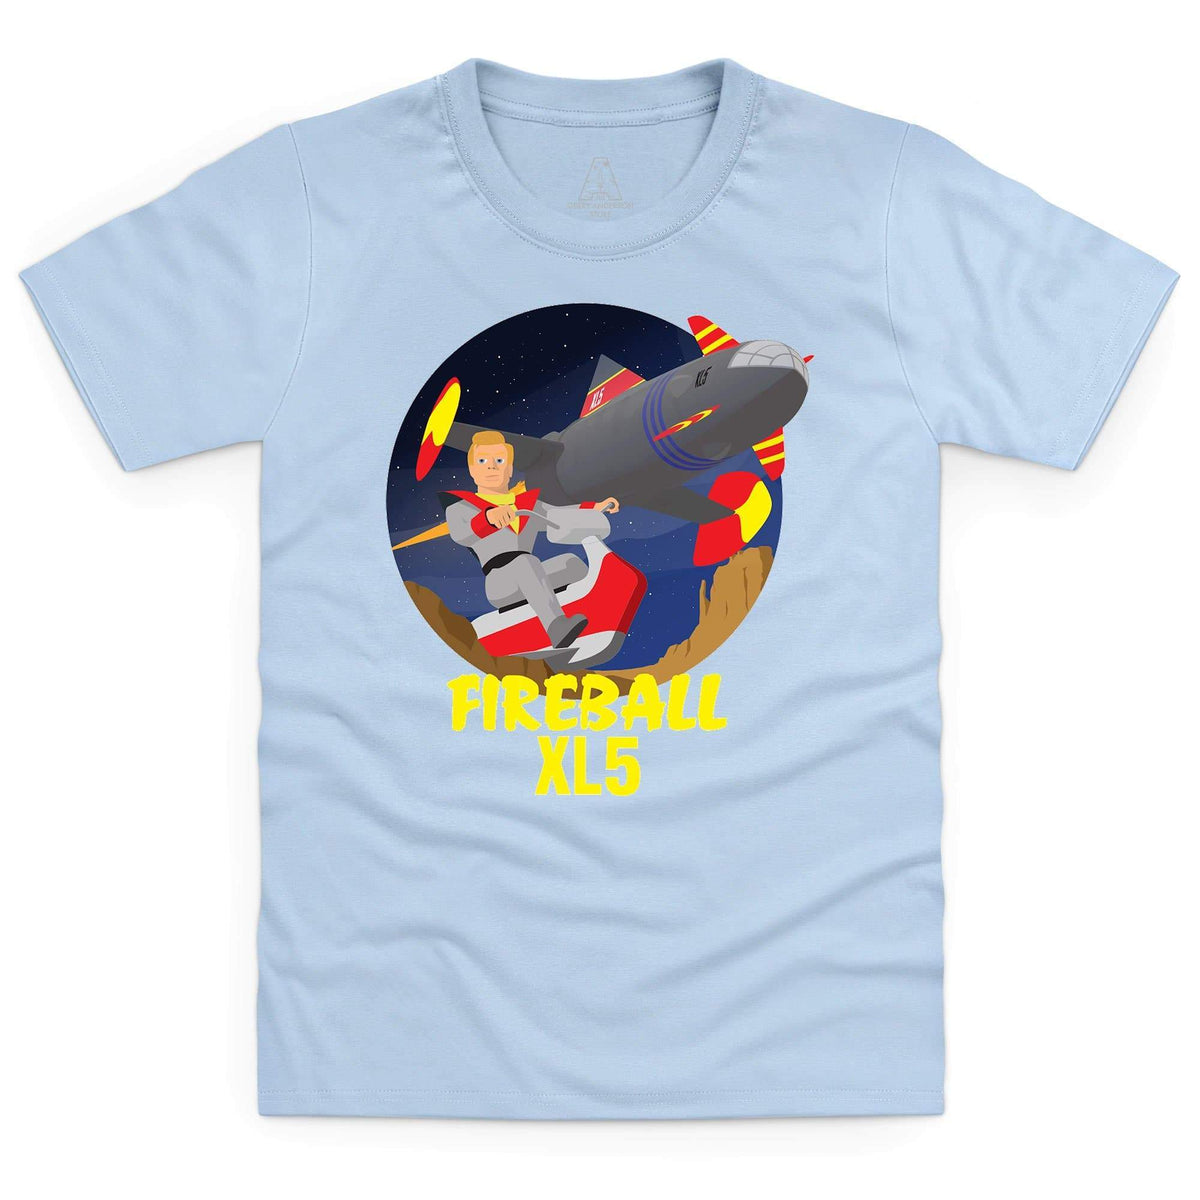 Fireball XL5 Kid's T-Shirt [Official & Exclusive] - The Gerry Anderson Store